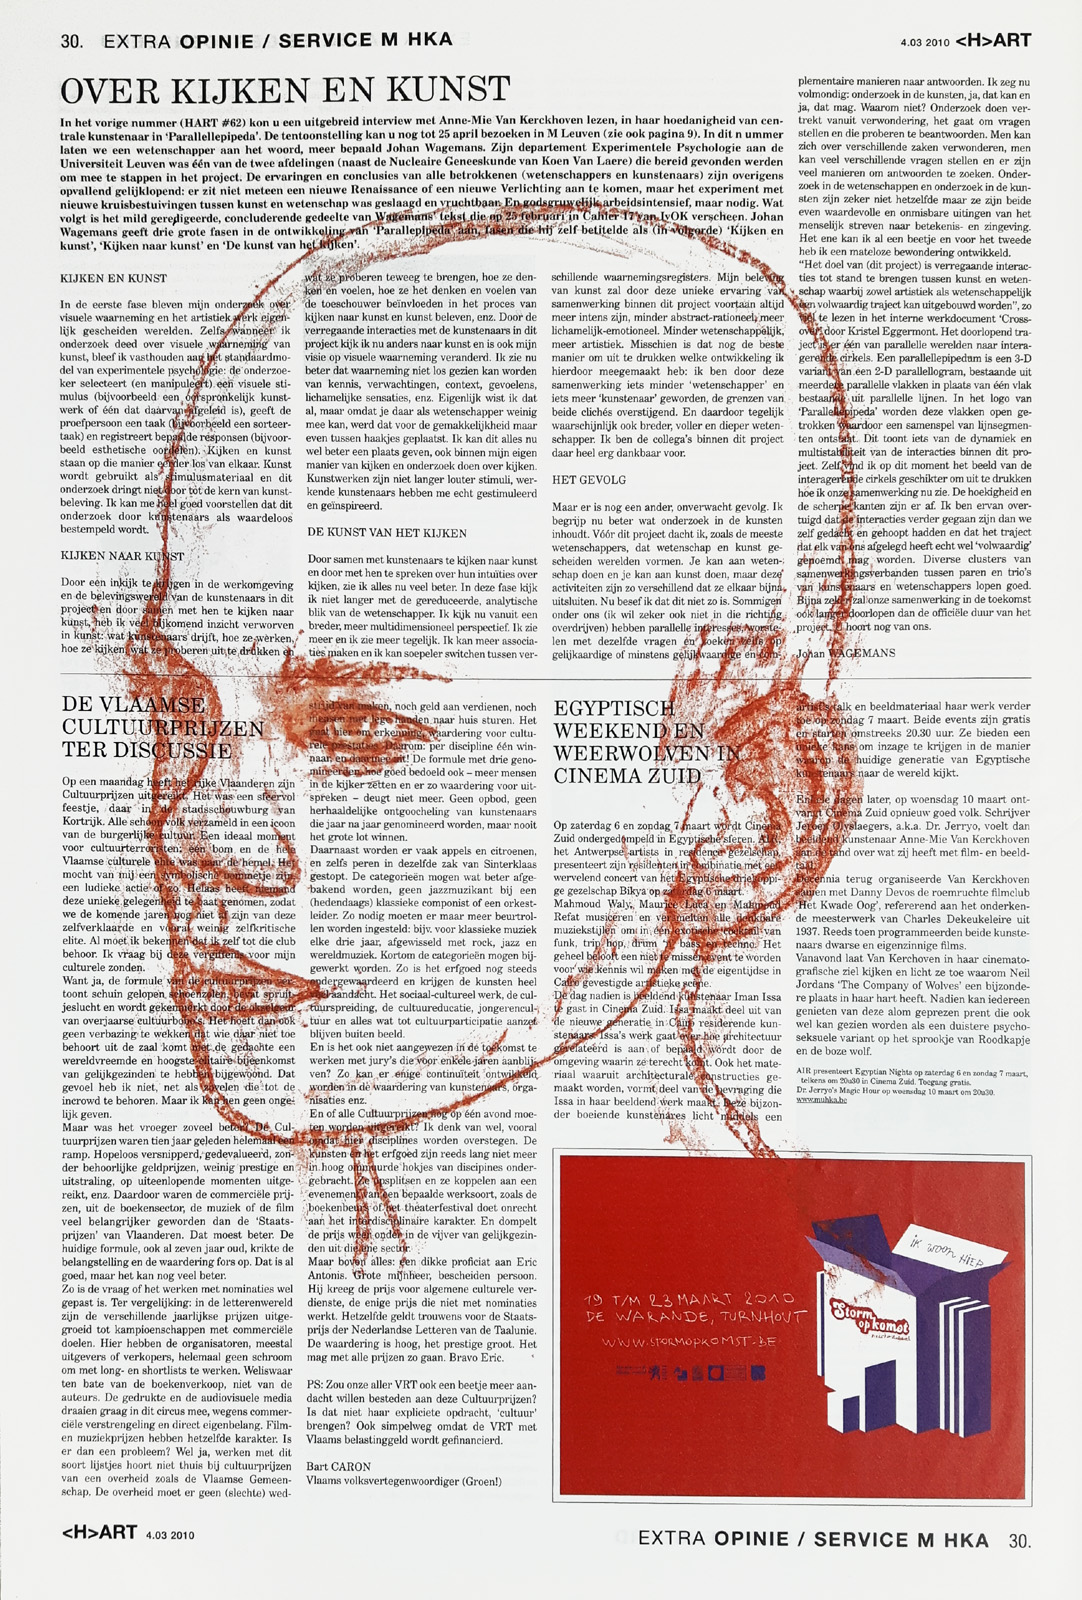 Head, frottage on newsprint, Mike Tedder